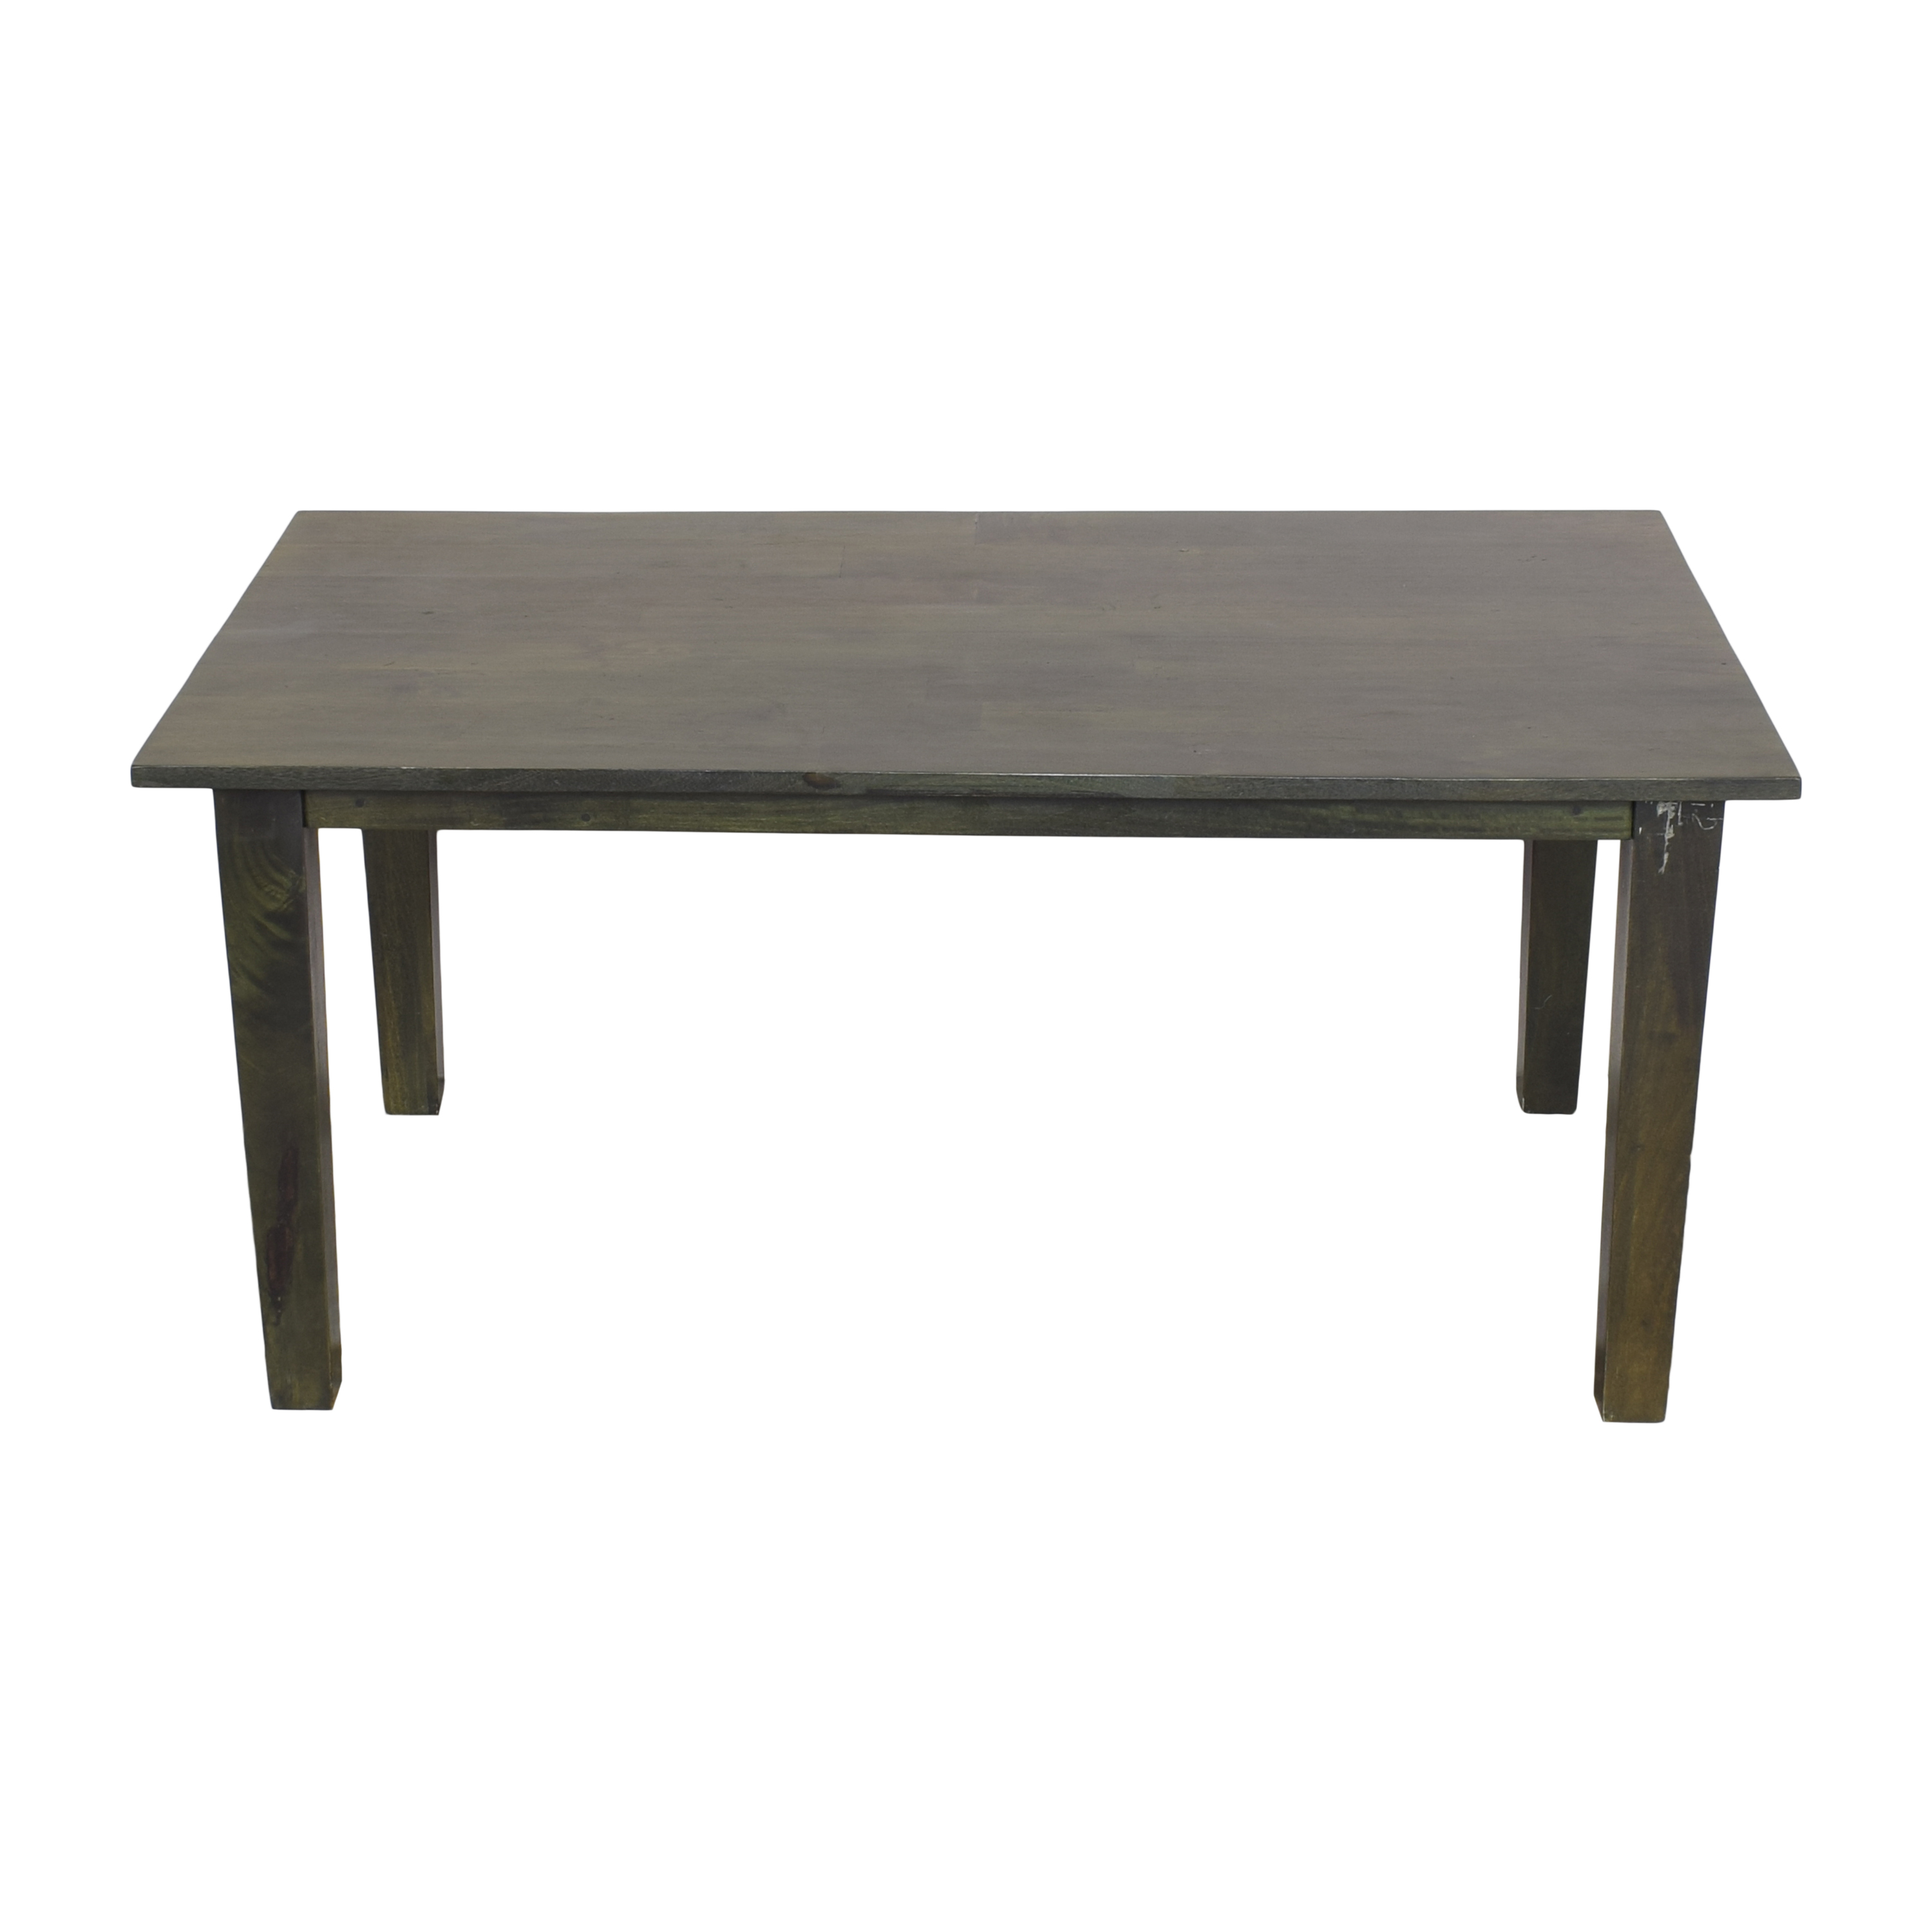 Crate & Barrel Crate & Barrel Basque Dining Table Dinner Tables